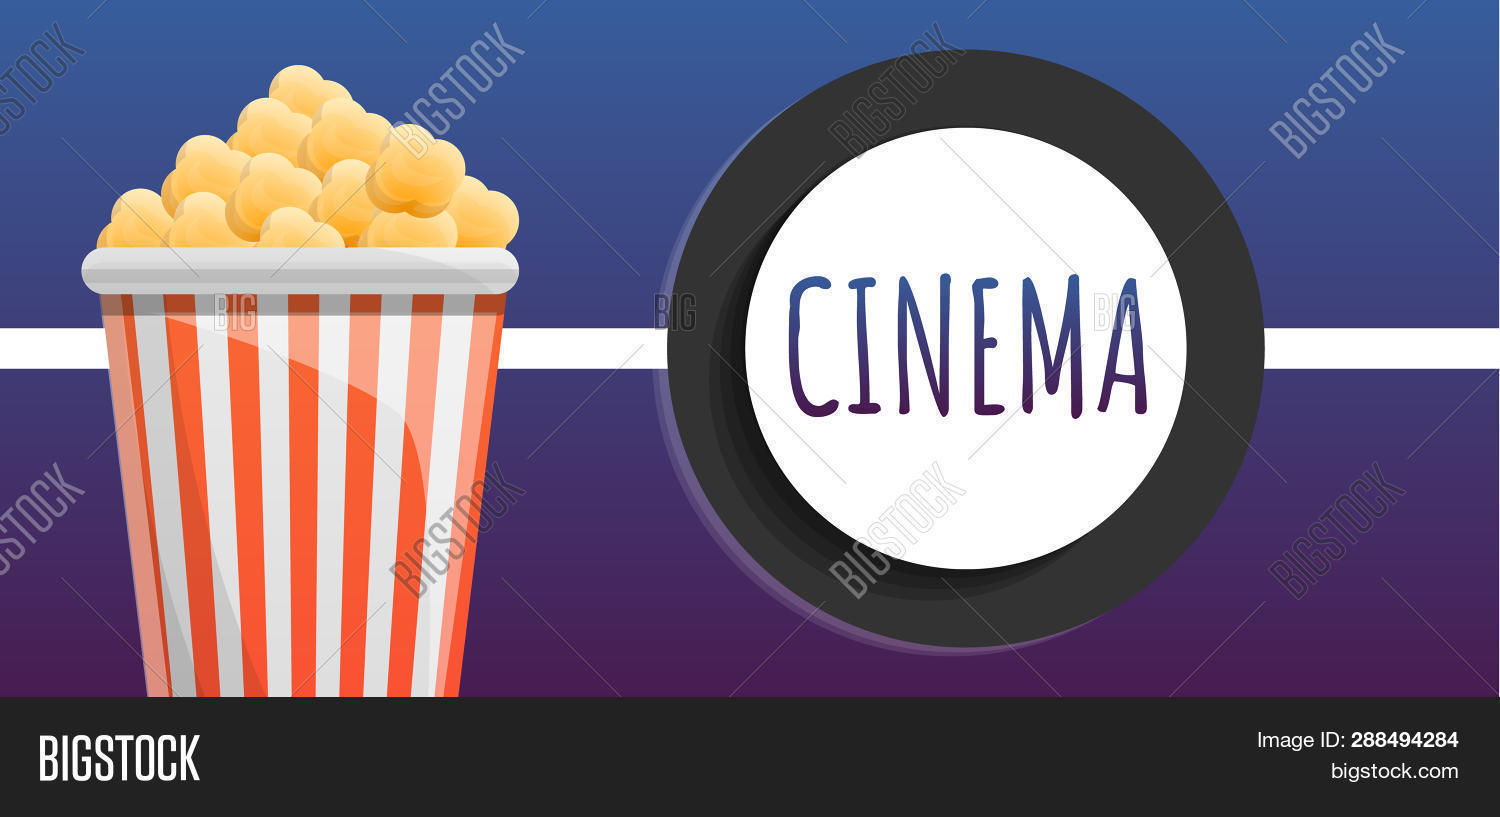 Cinema Popcorn Bucket Image Photo Free Trial Bigstock